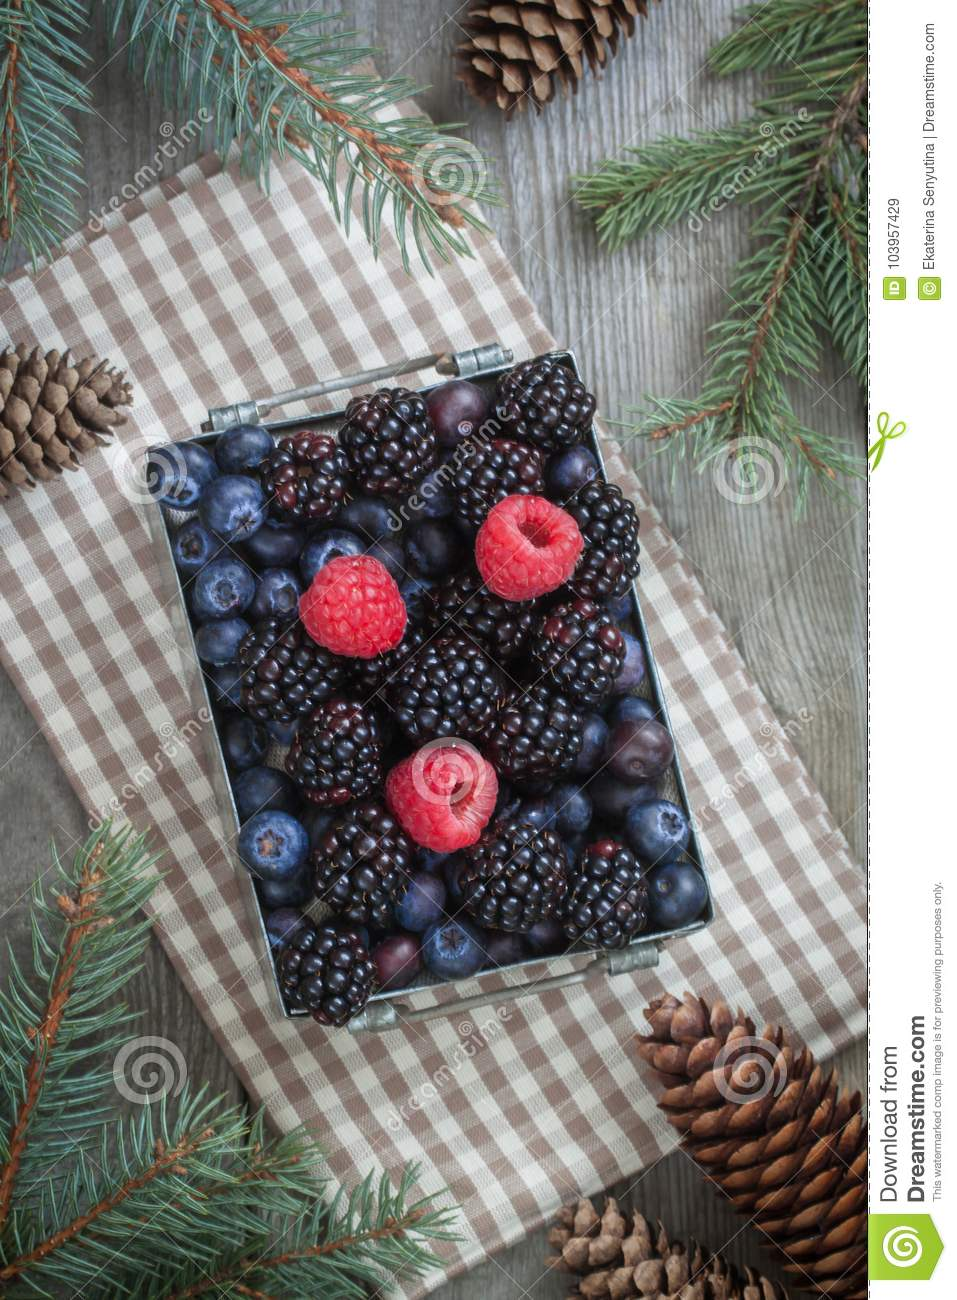 Fresh Berries In The Iron Box On The Beige Napkin With Cones And Christmas Tree Branches Rustic Background Stock Image Image Of Fresh Health 103957429